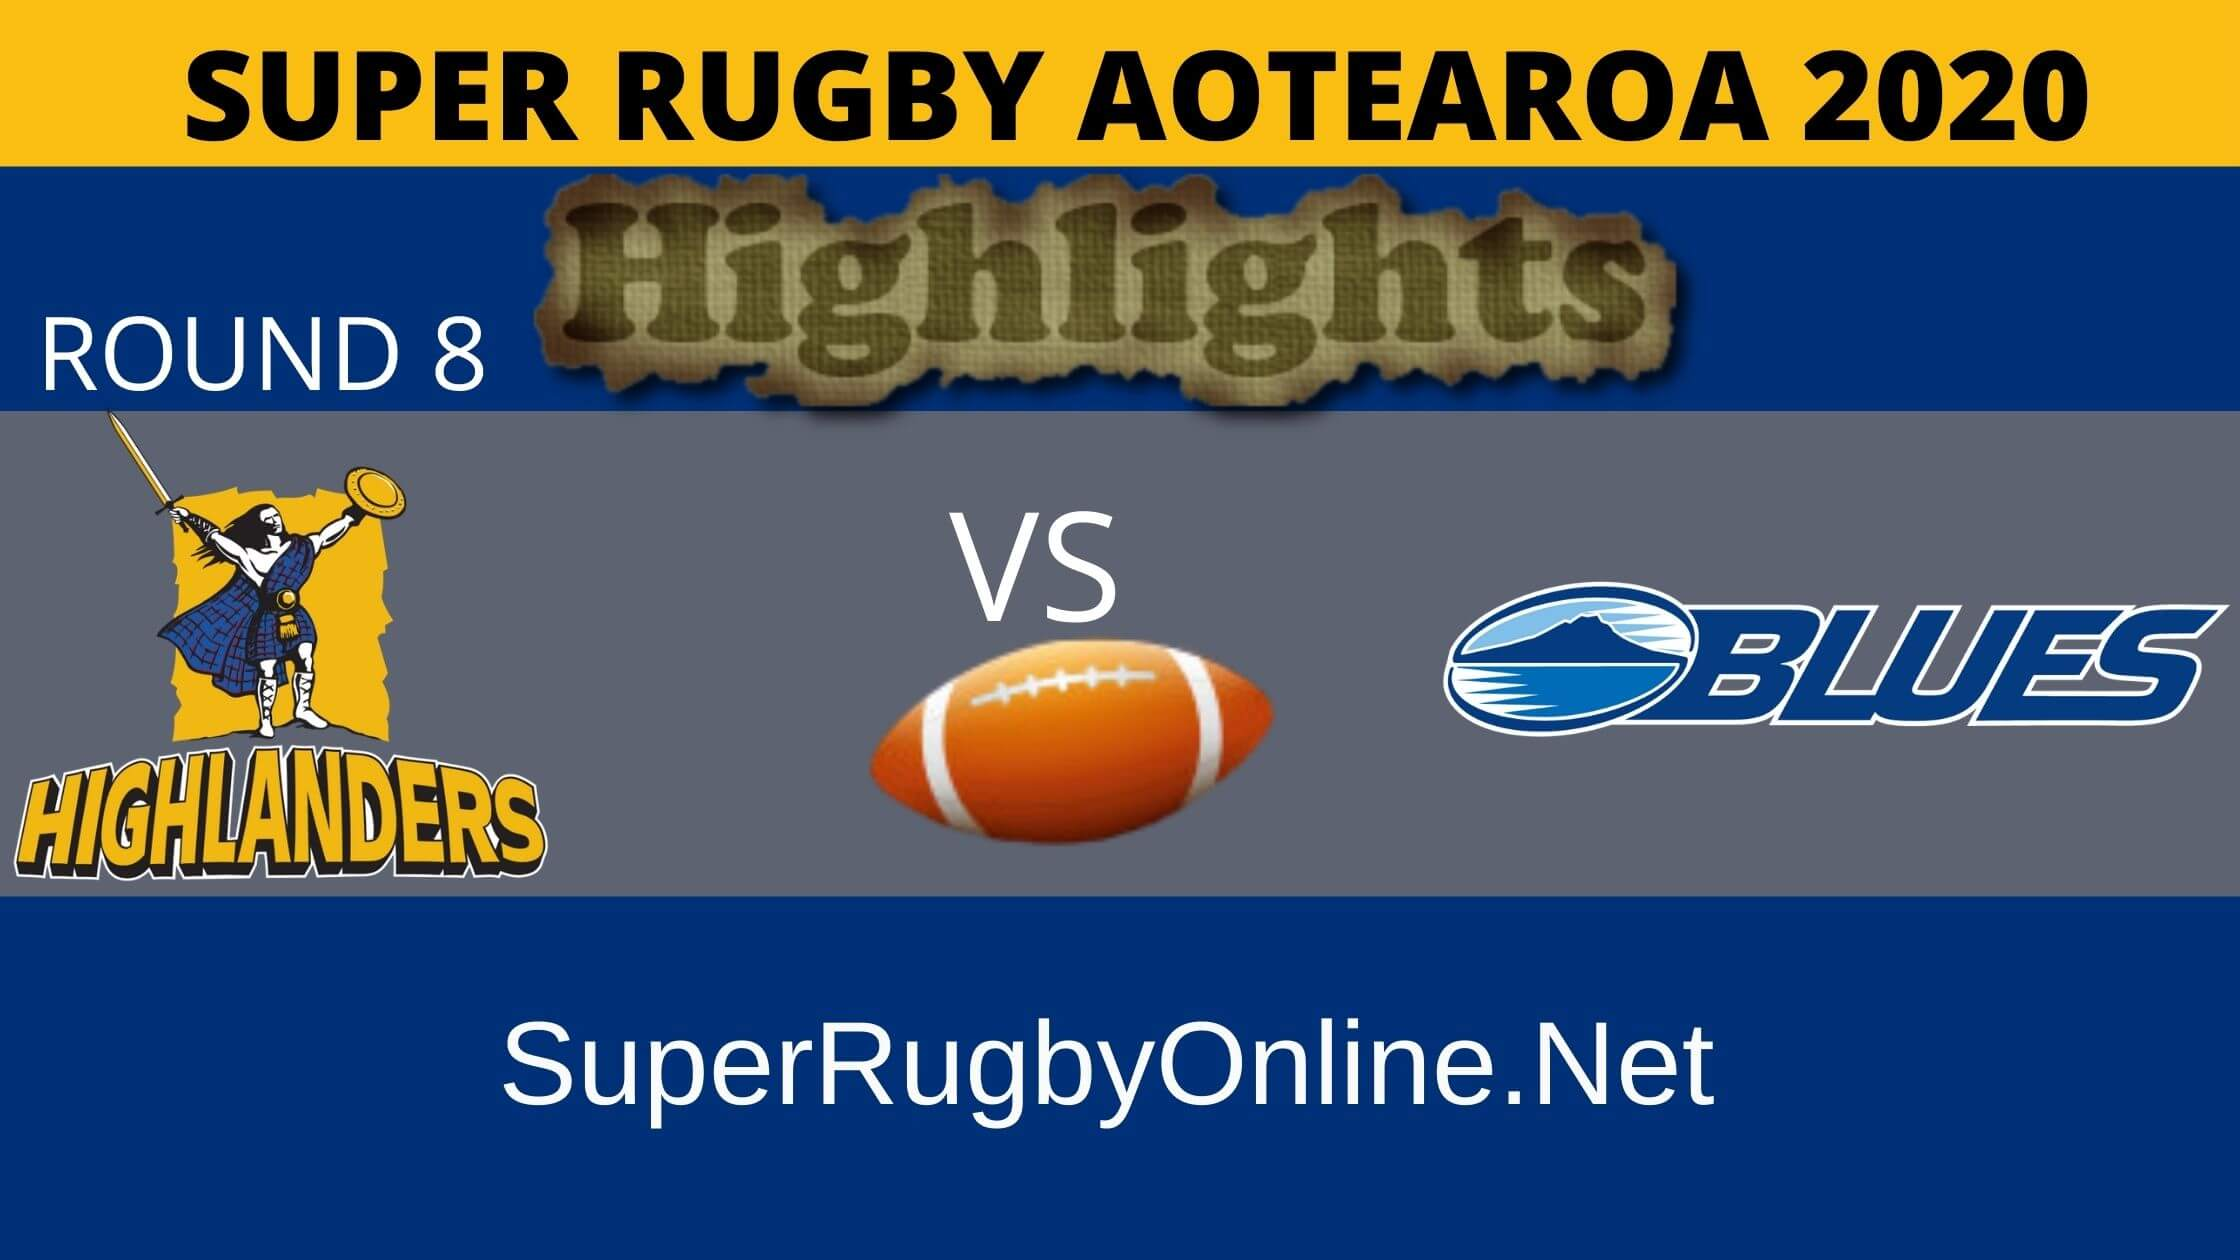 Highlanders Vs Blues Rd 5 Highlights 2020 Super Rugby Aotearoa